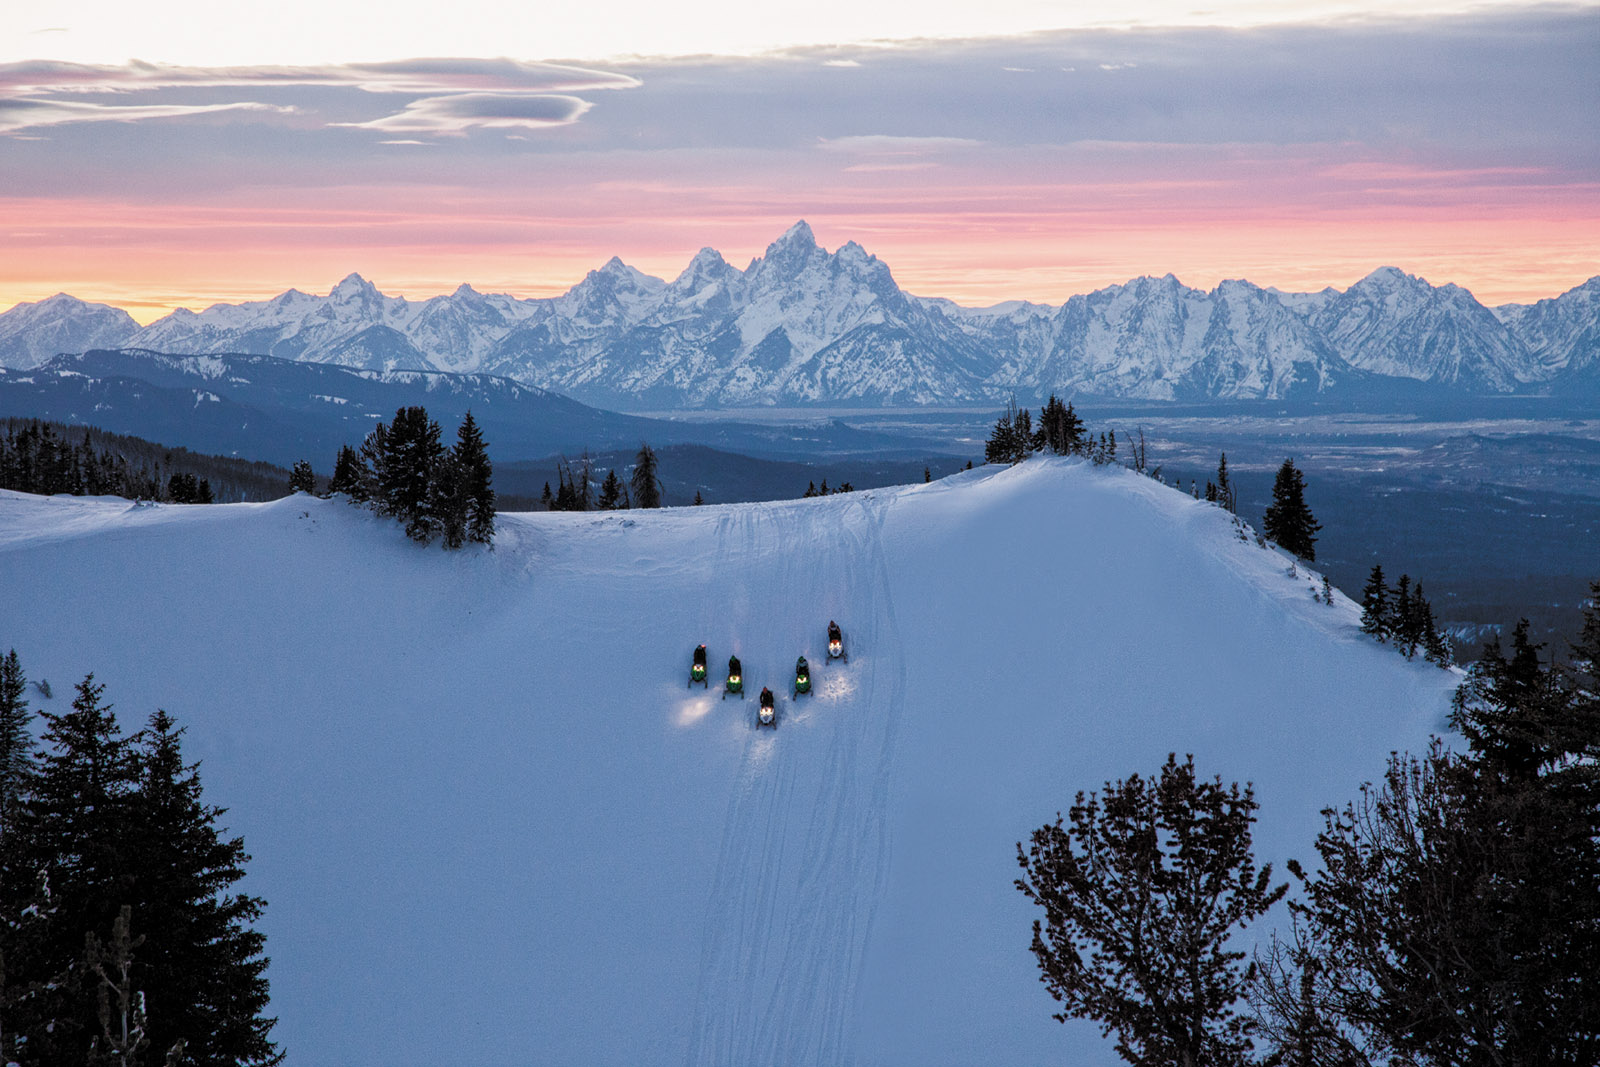 Snowmobilers on Angle Mountain with the Teton Range in the background, Togwotee, Wyoming